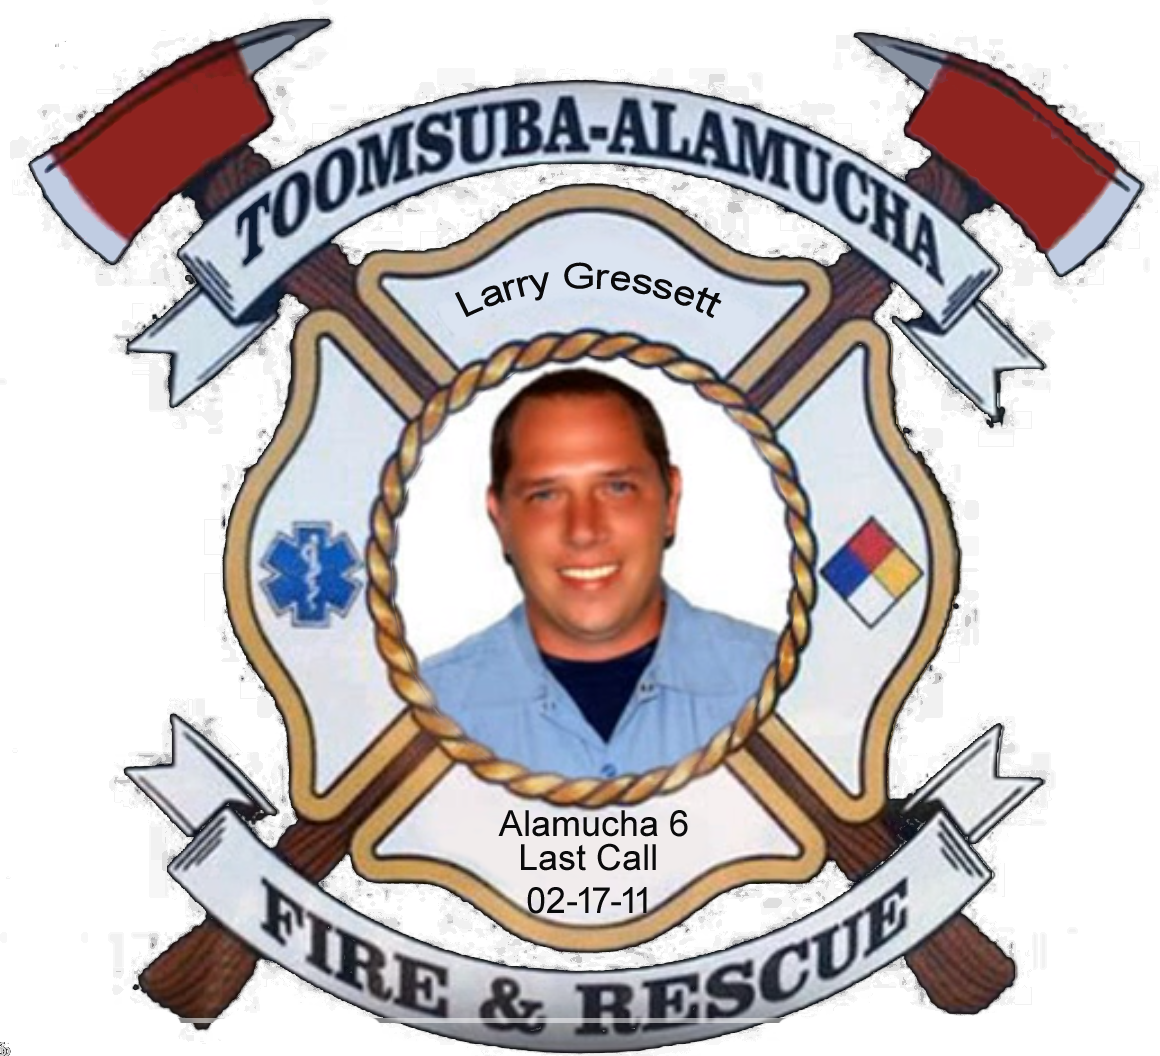 Larry Gressett; Alamucha Firefighter